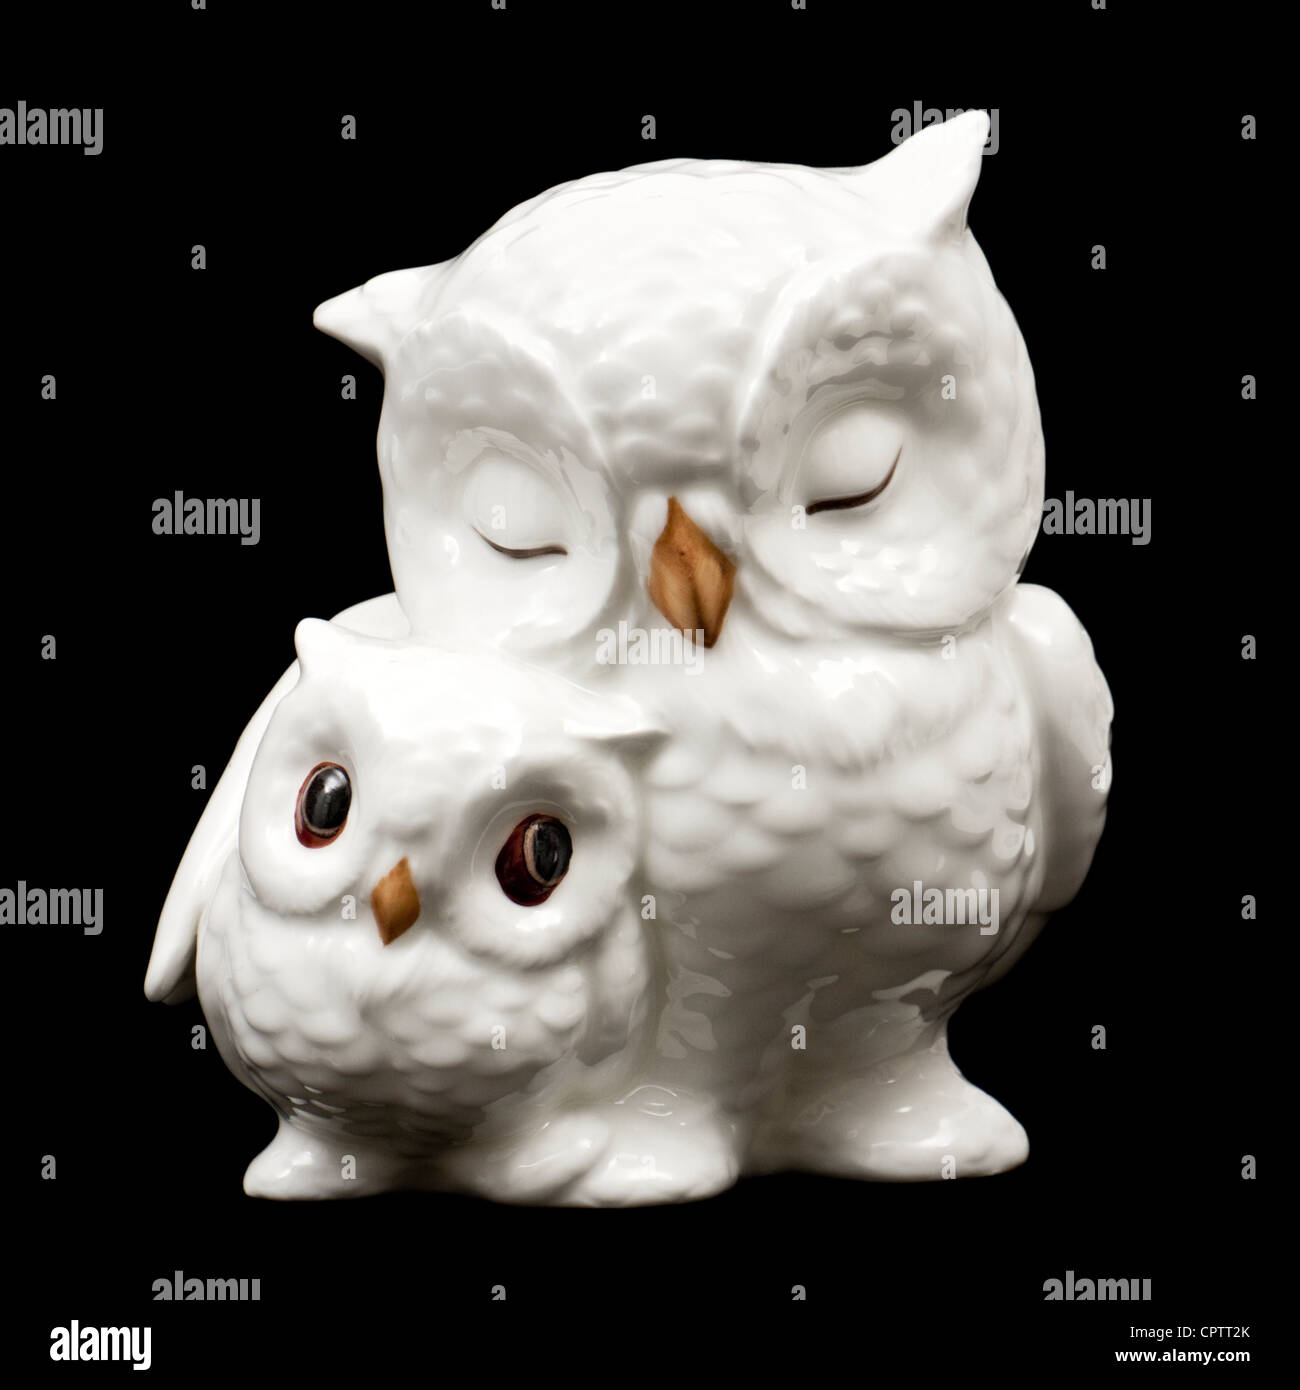 Royal Osborne porcelain mother and baby owls figurine - Stock Image